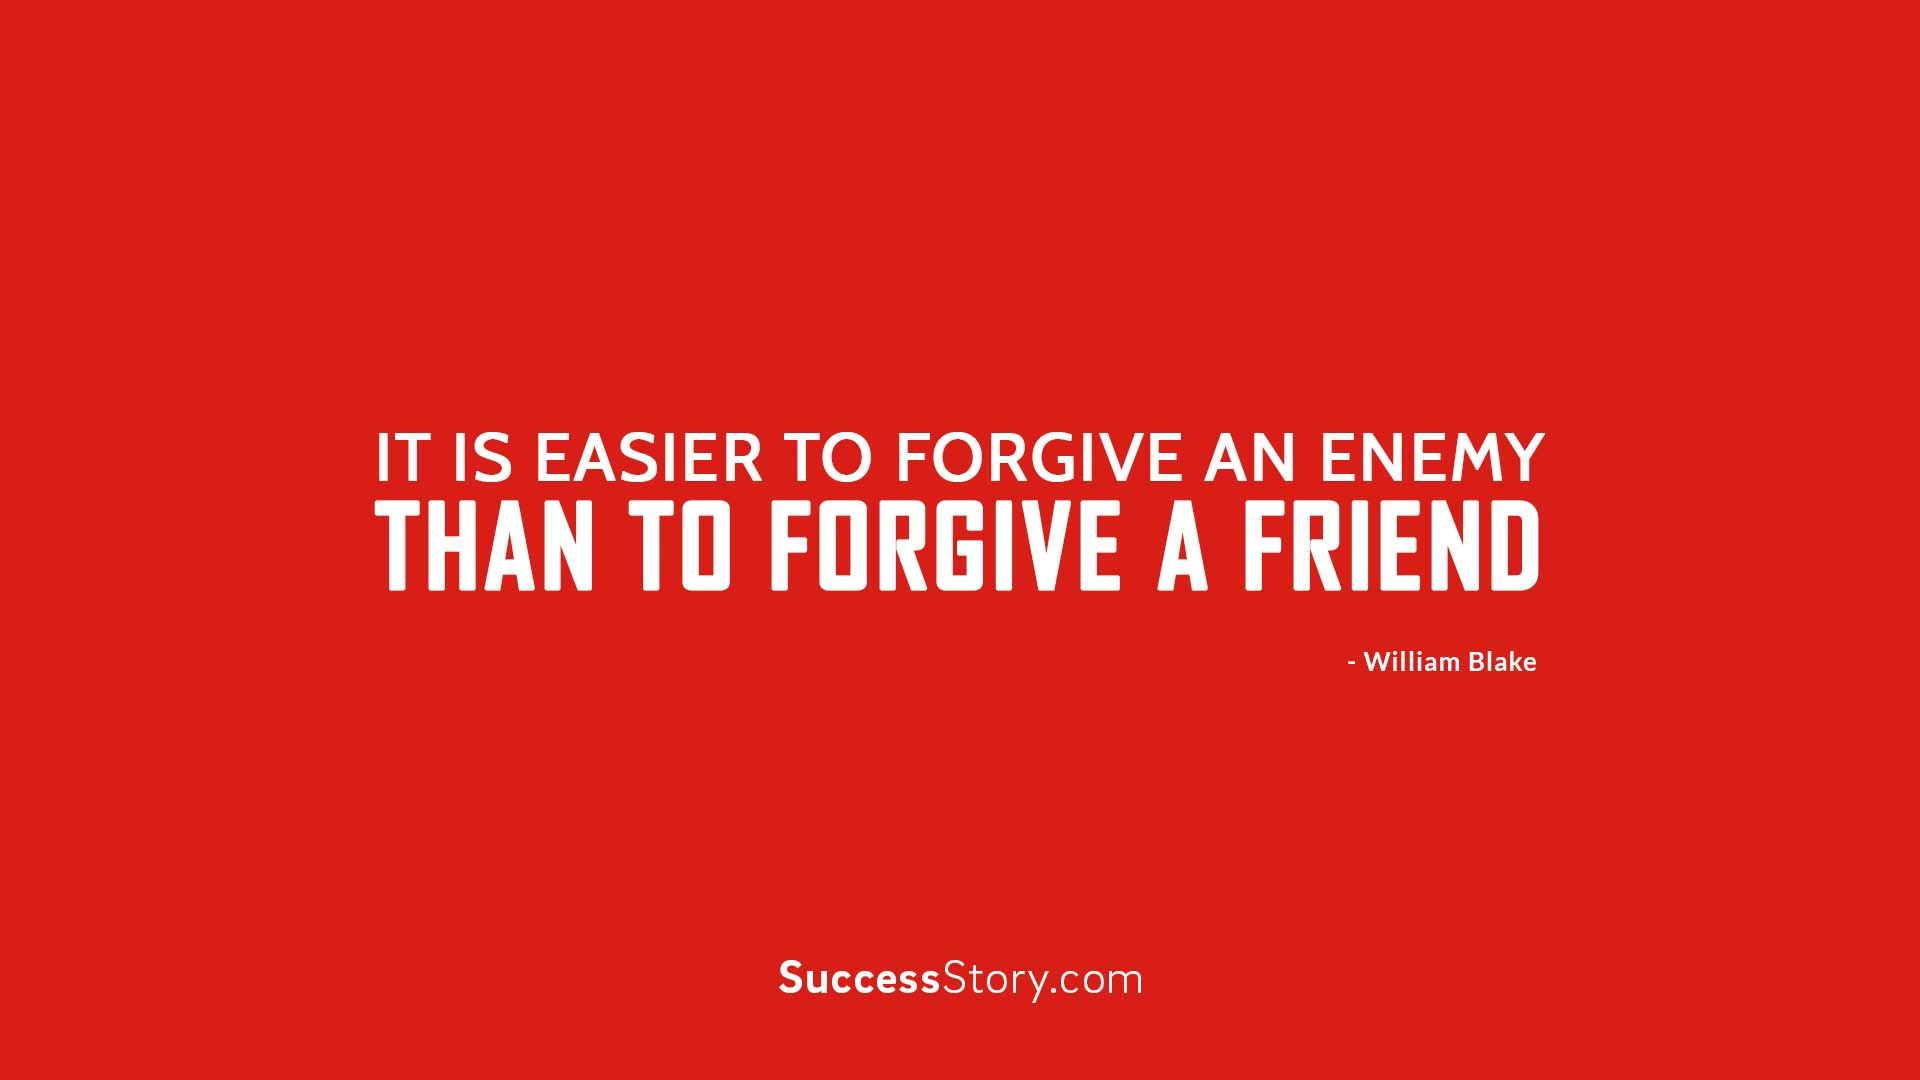 Forgiveness is a noble virtue and only reflects a humane spirit. Vengeance only…